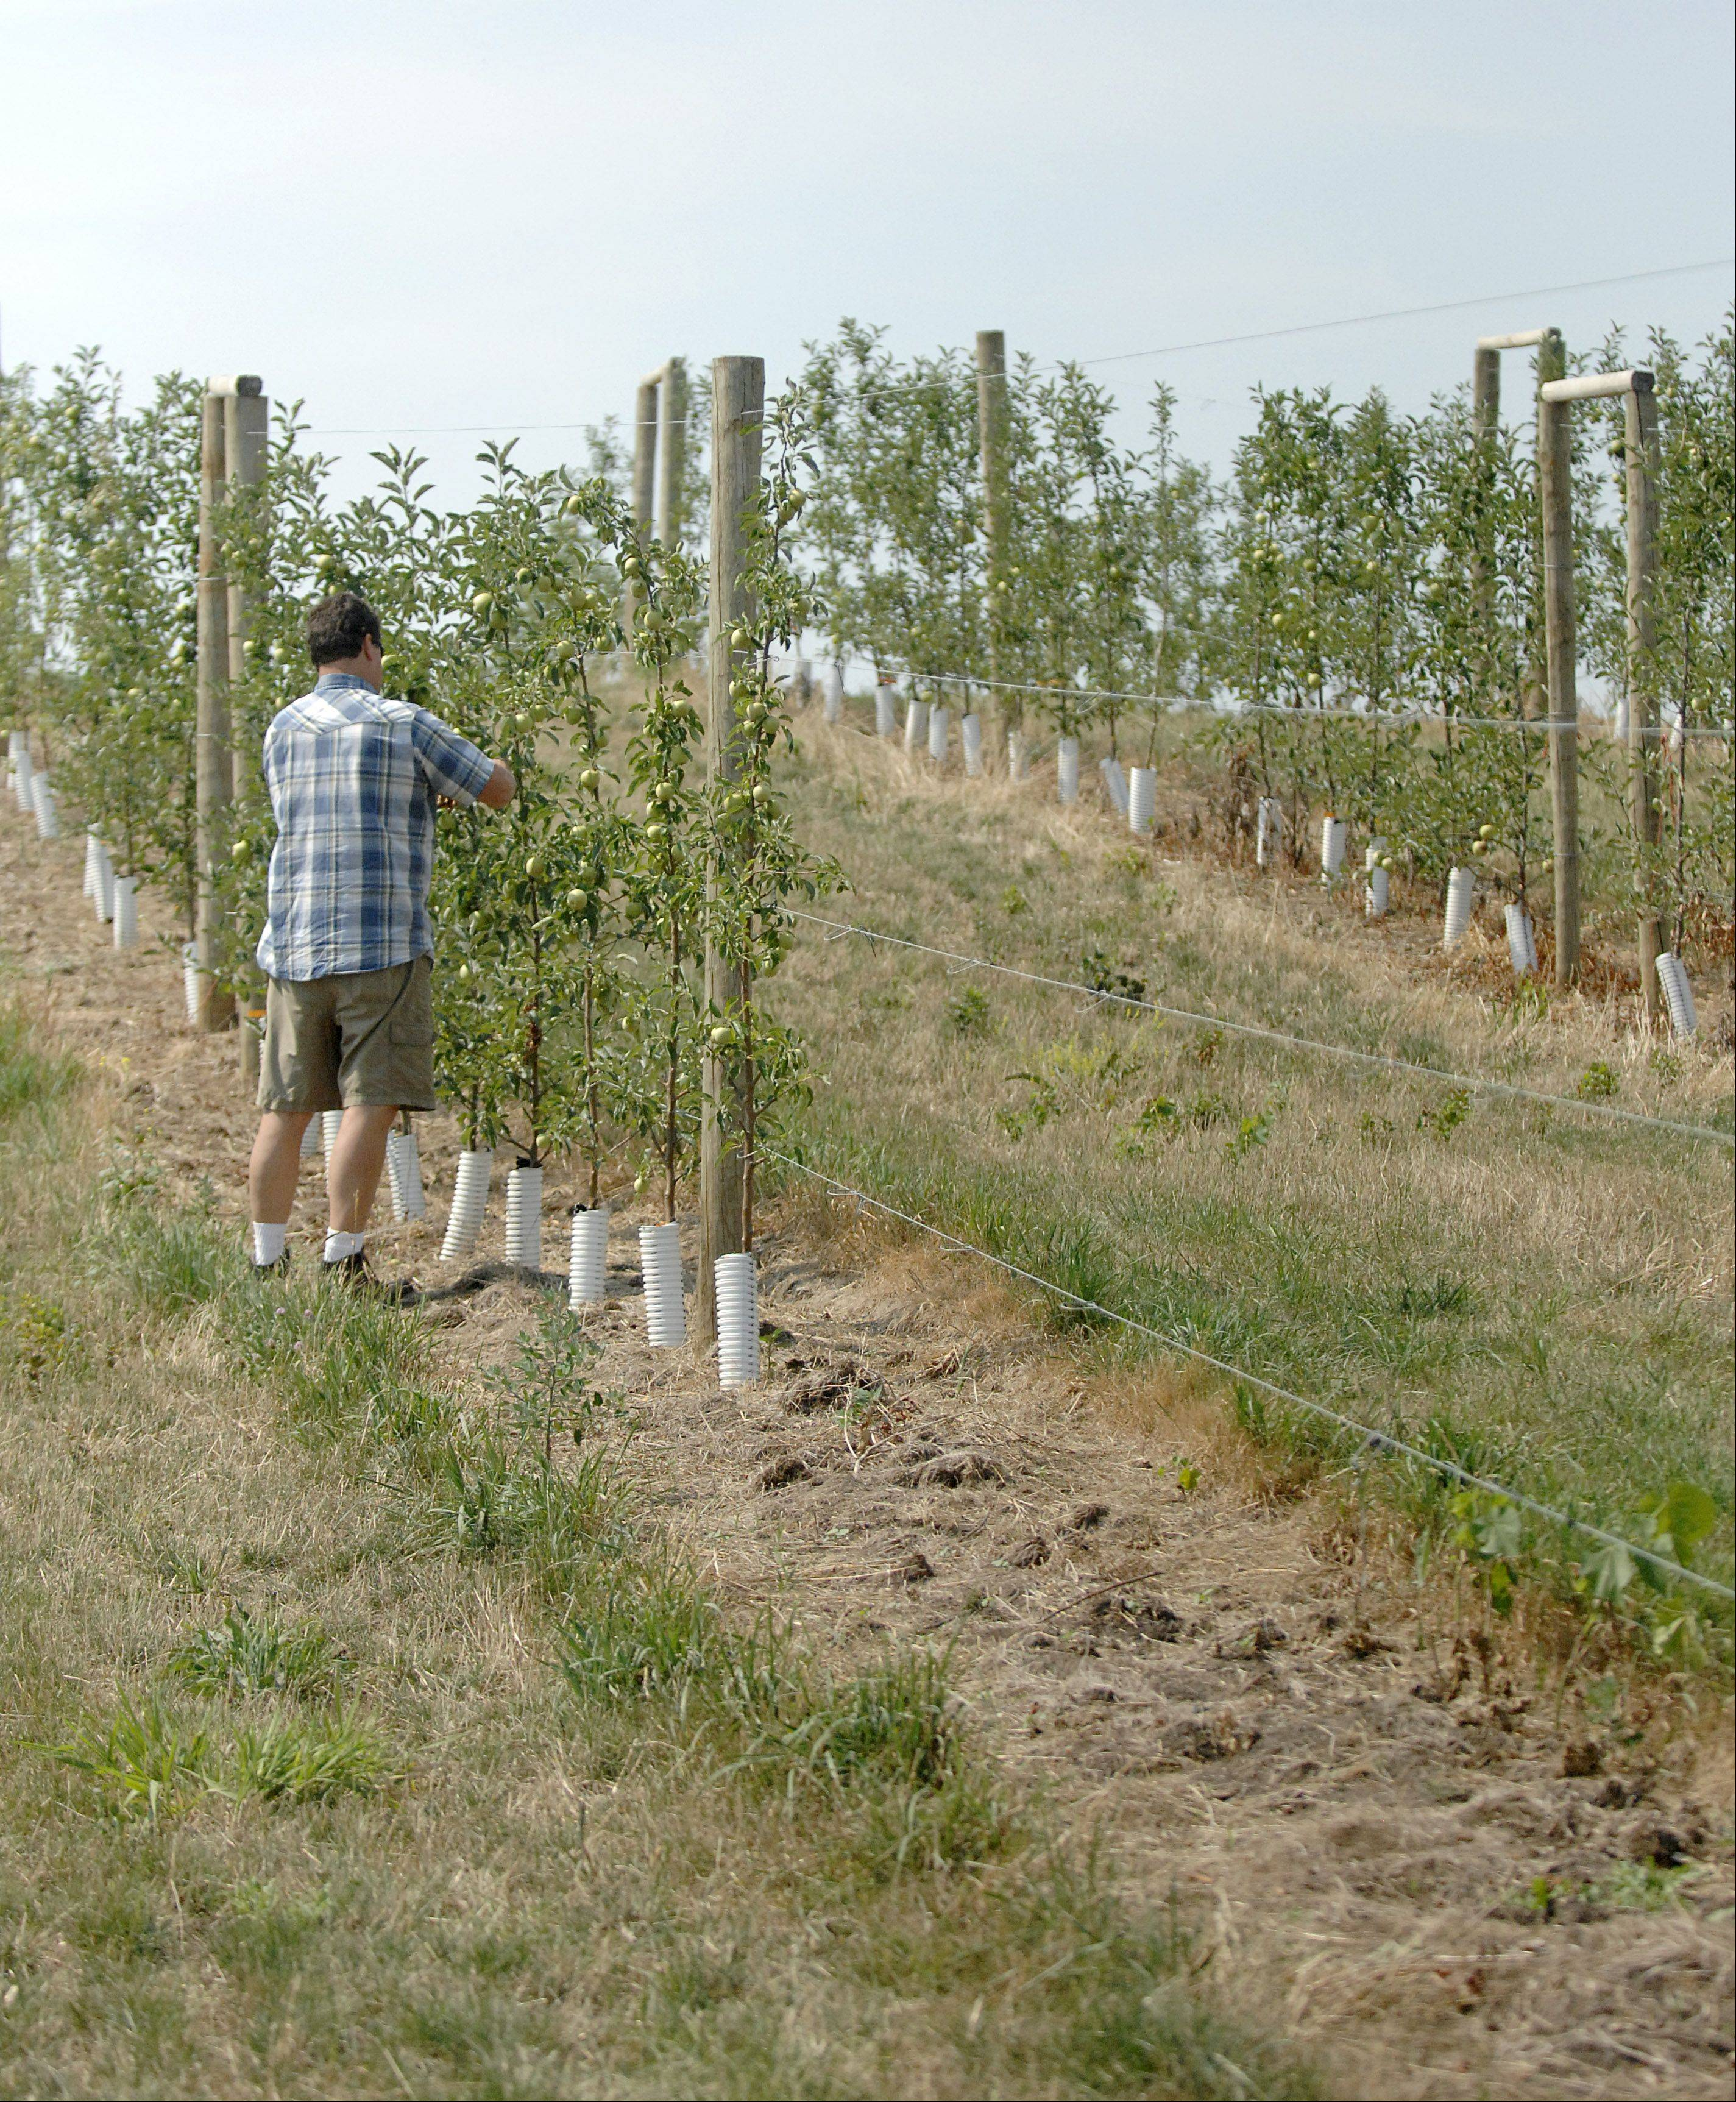 Wade Kuiper of Kuipers Family Farm checks on Gibson Golden apple trees in his orchard in Maple Park. The empty space on right was filled with apple trees planted this spring that didn't make it. They will be replanted.